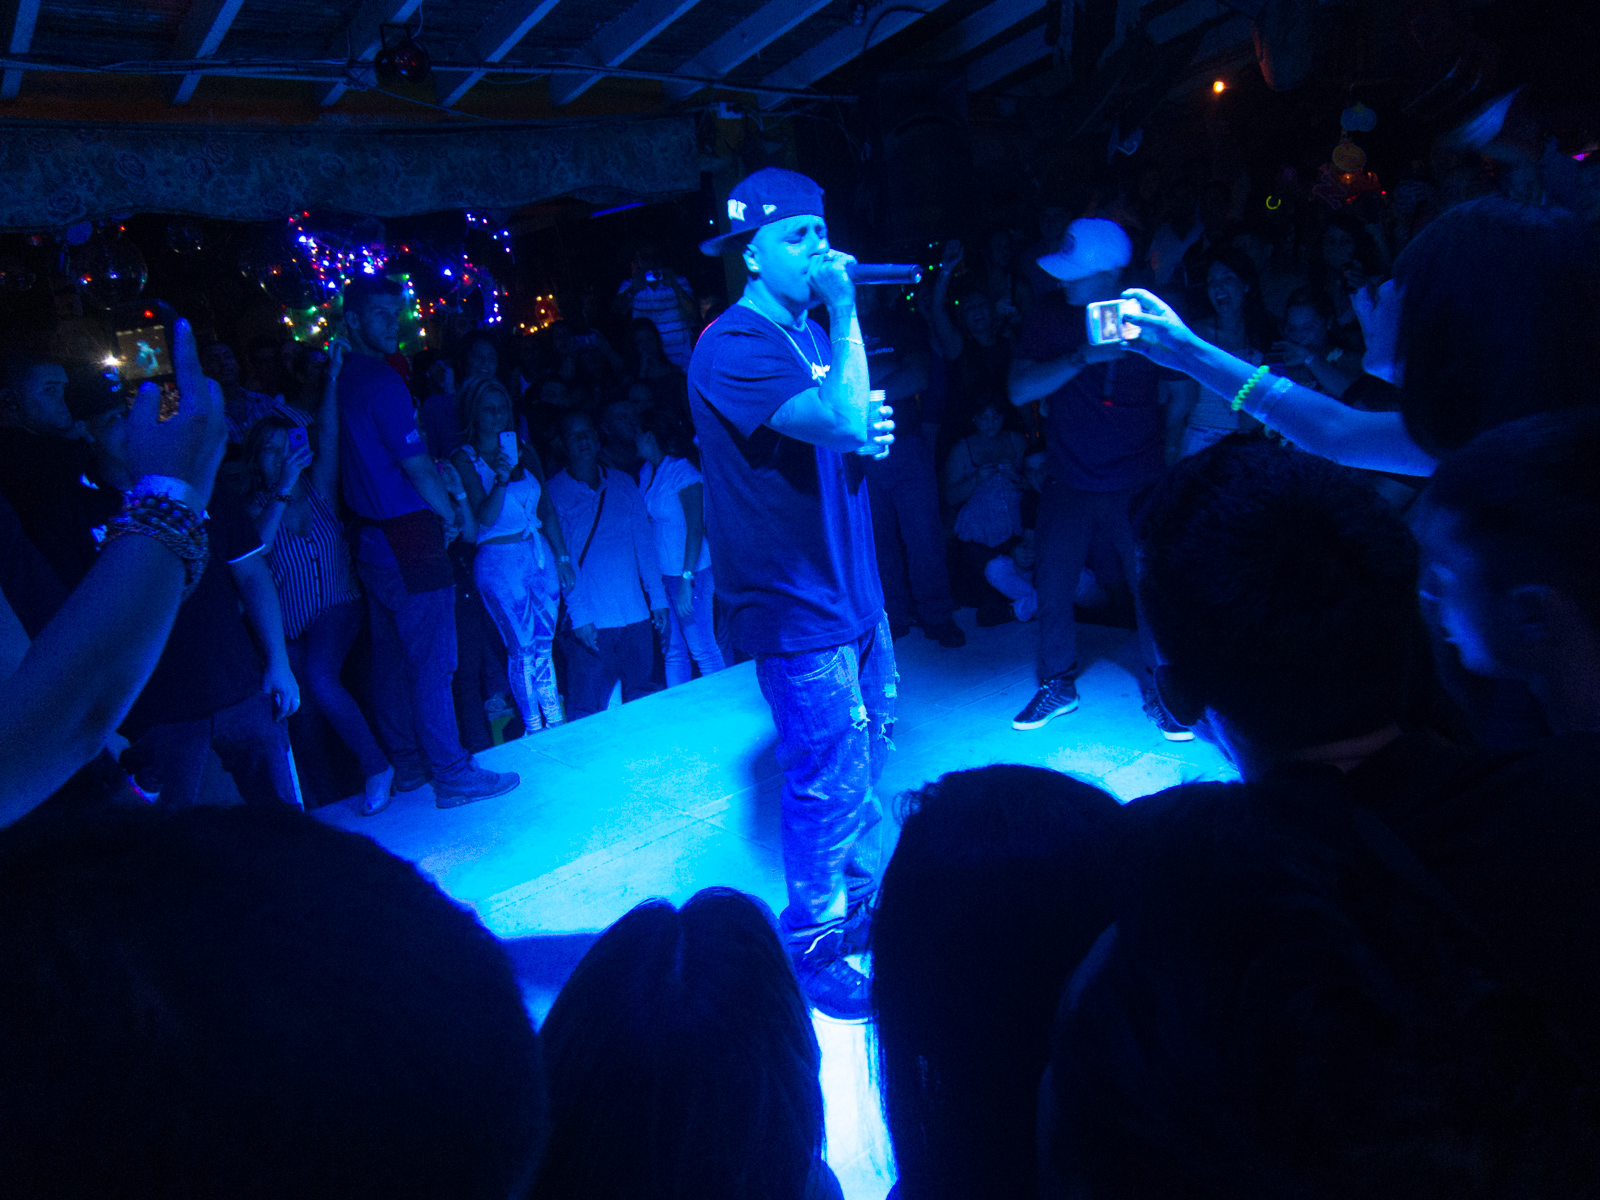 Nicky Jam performs at a club on Calle 10